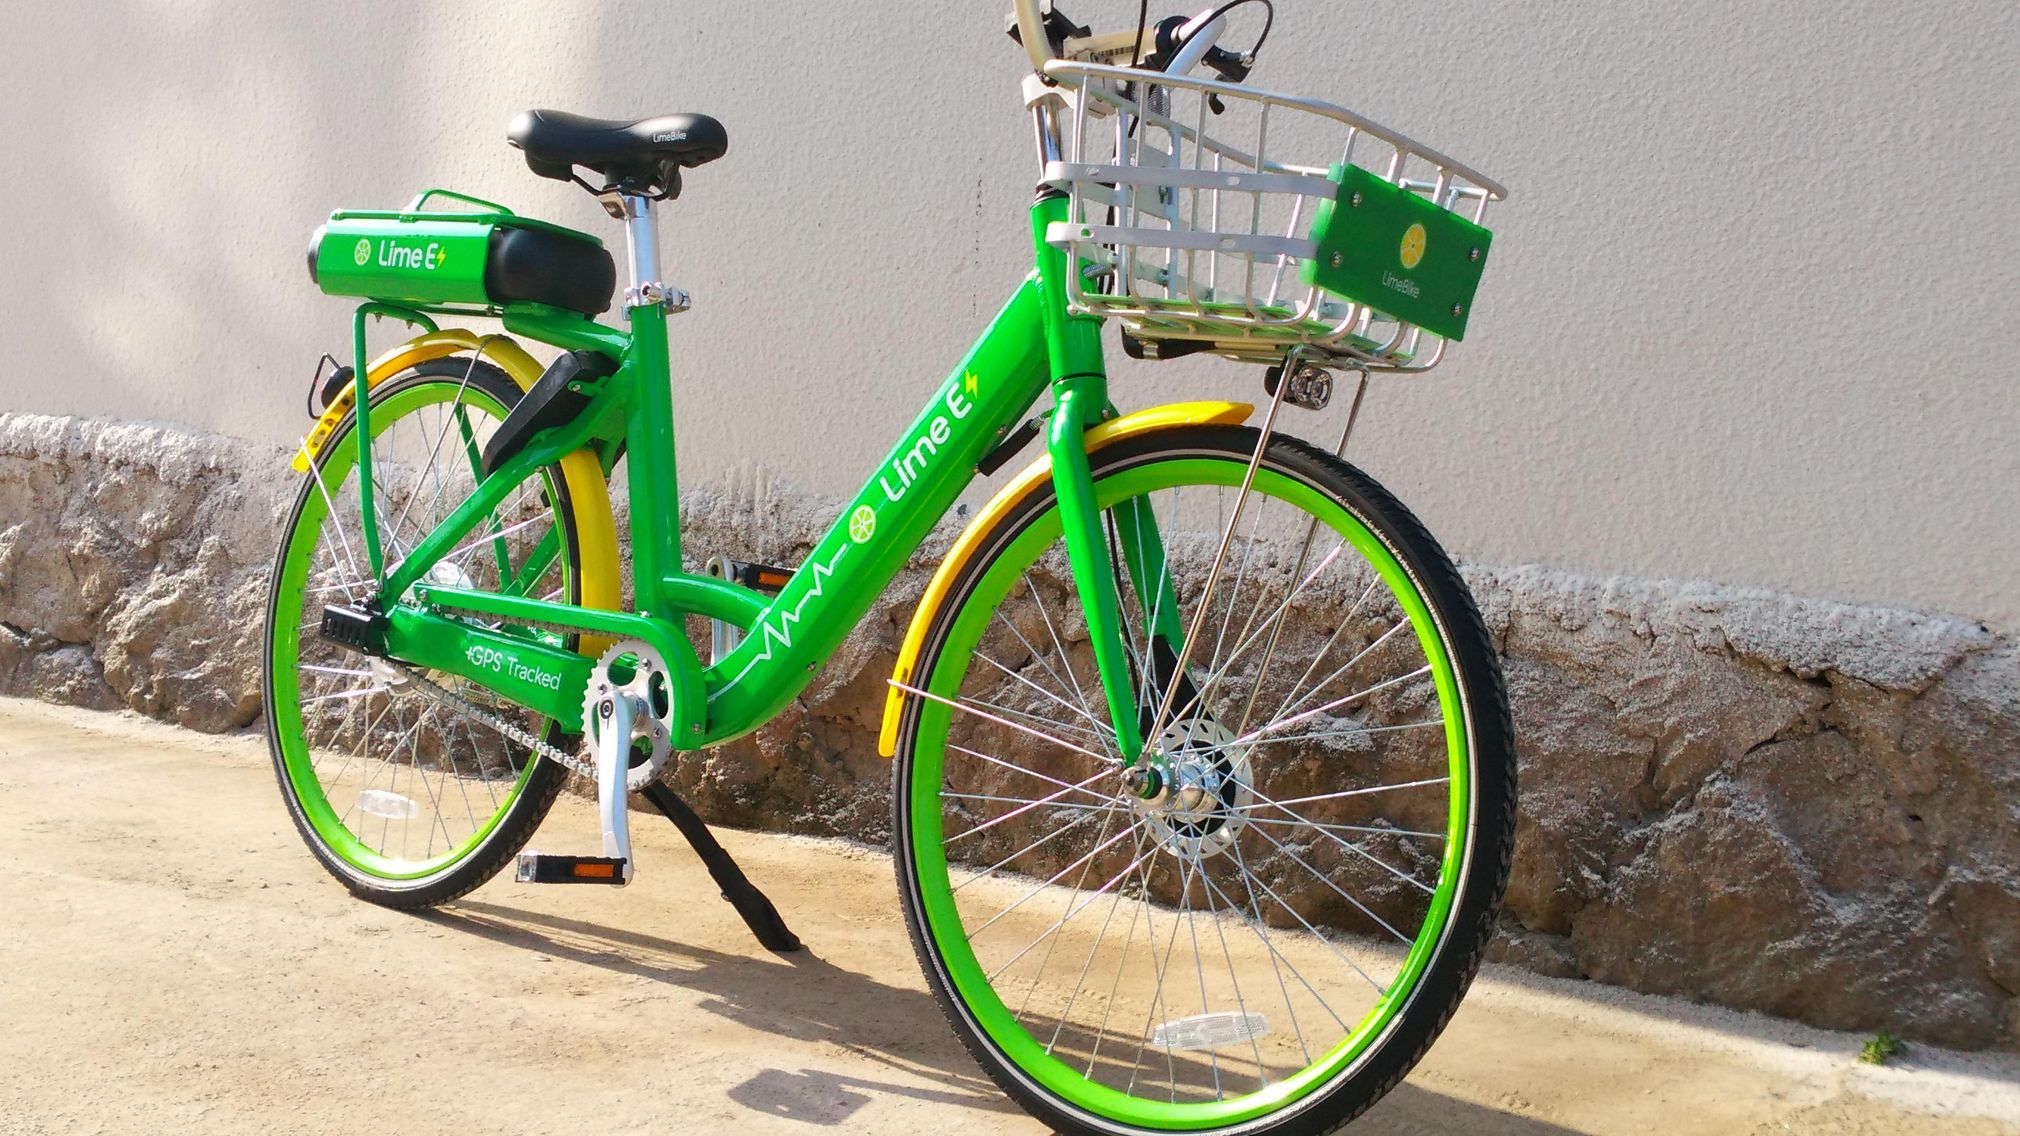 Limebike Wants To Make Your Uphill Ride Home Less Excruciating